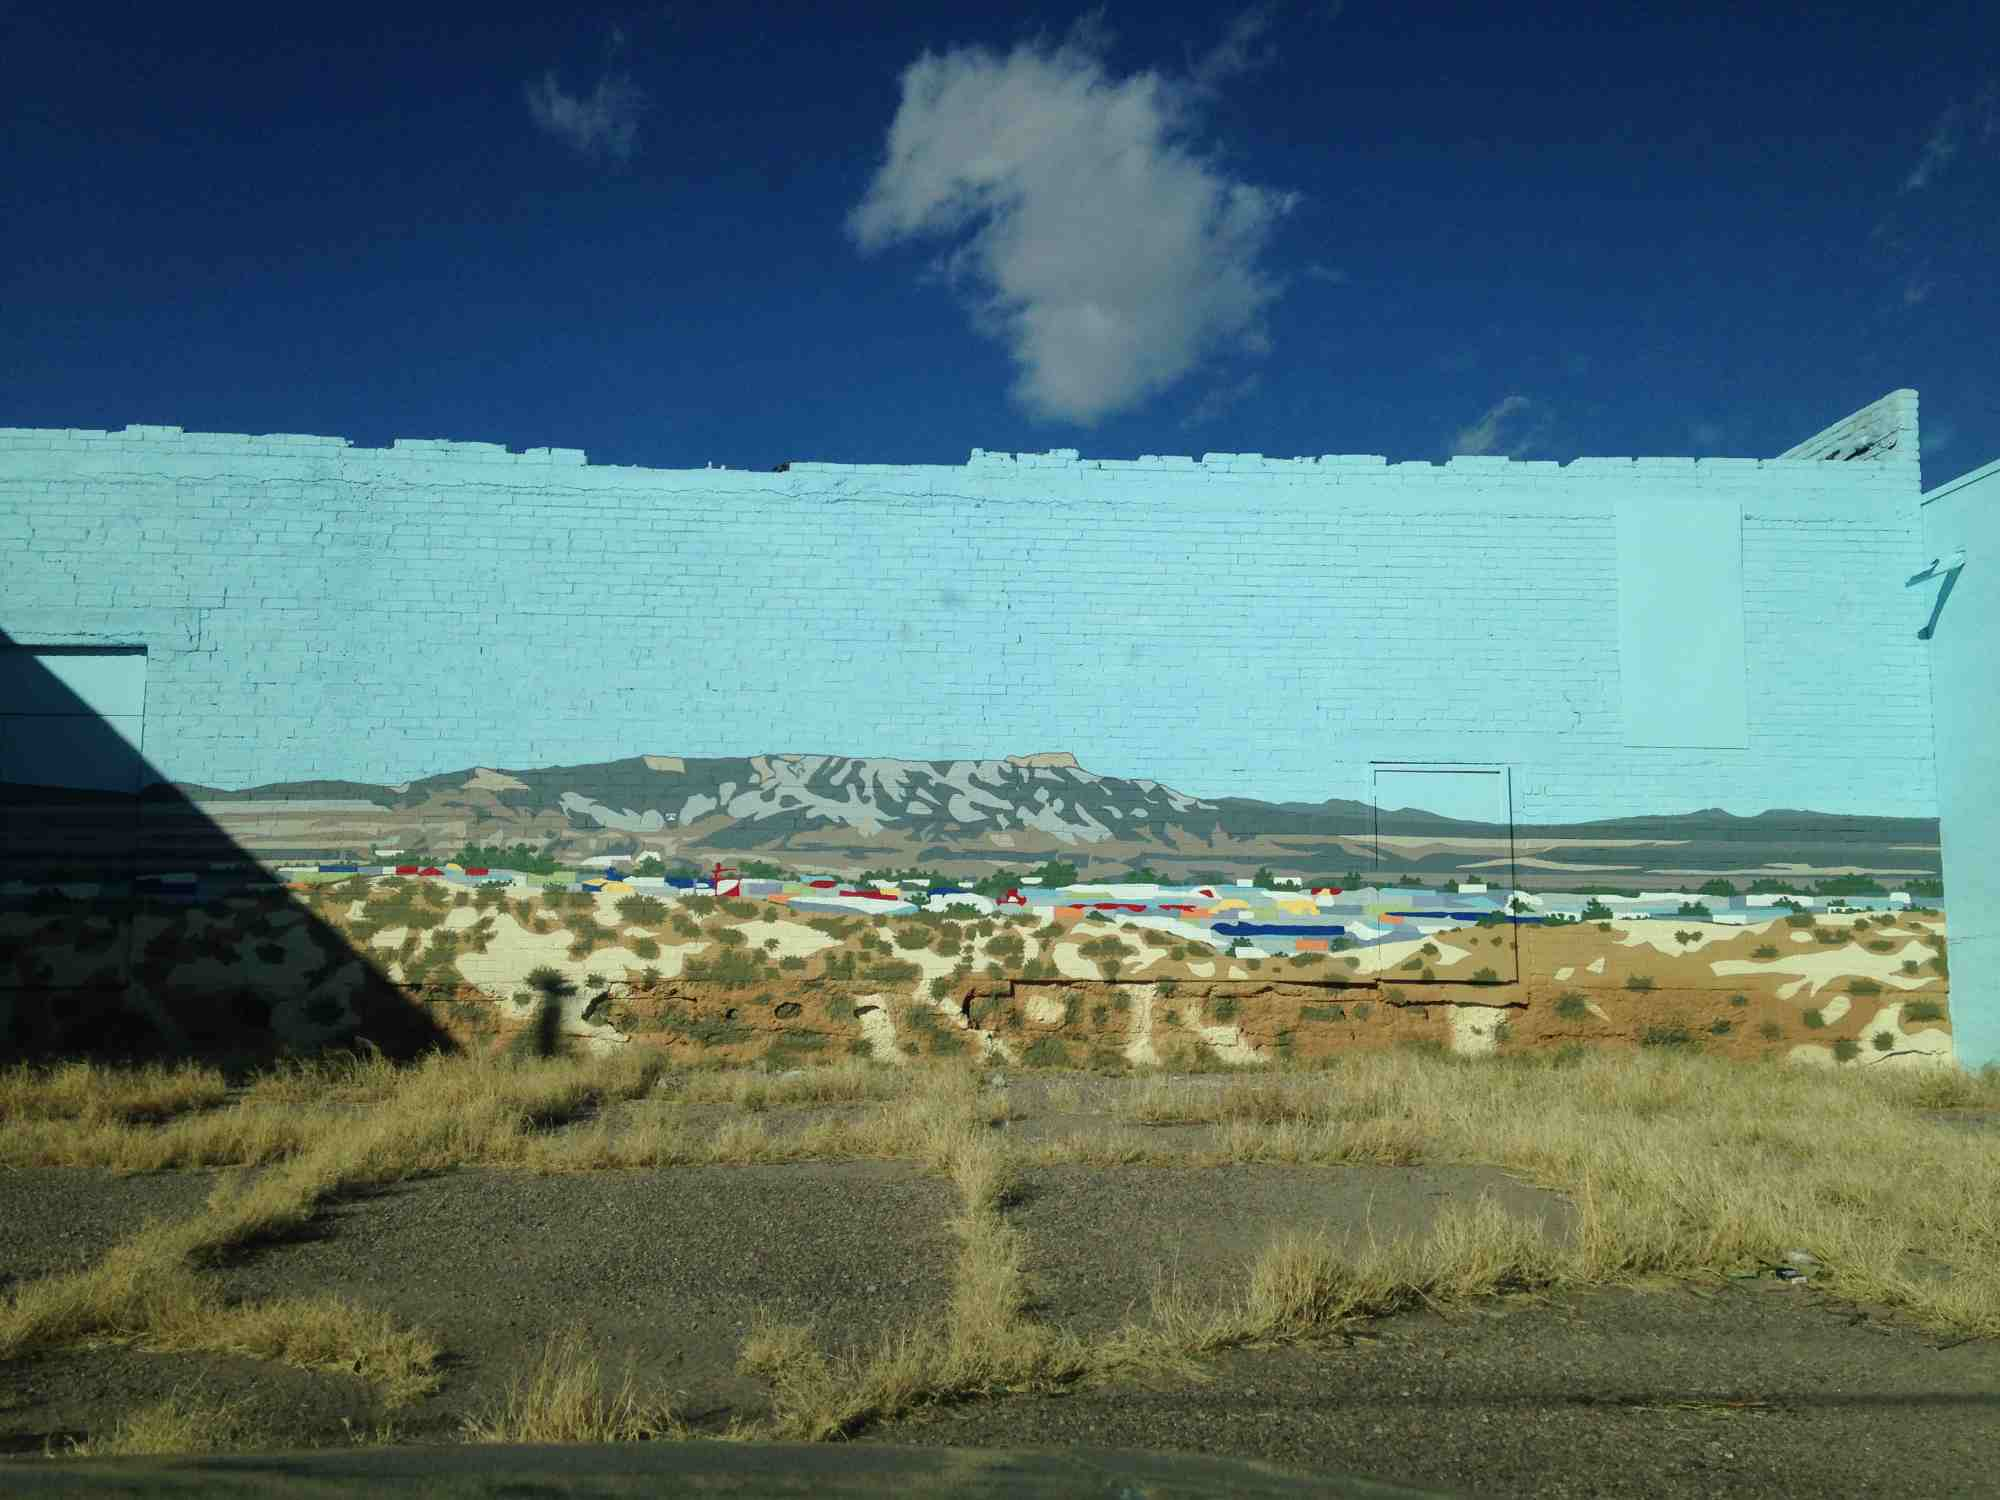 Reed Rische mural between Rio Bravo and Riverbend Hot Springs